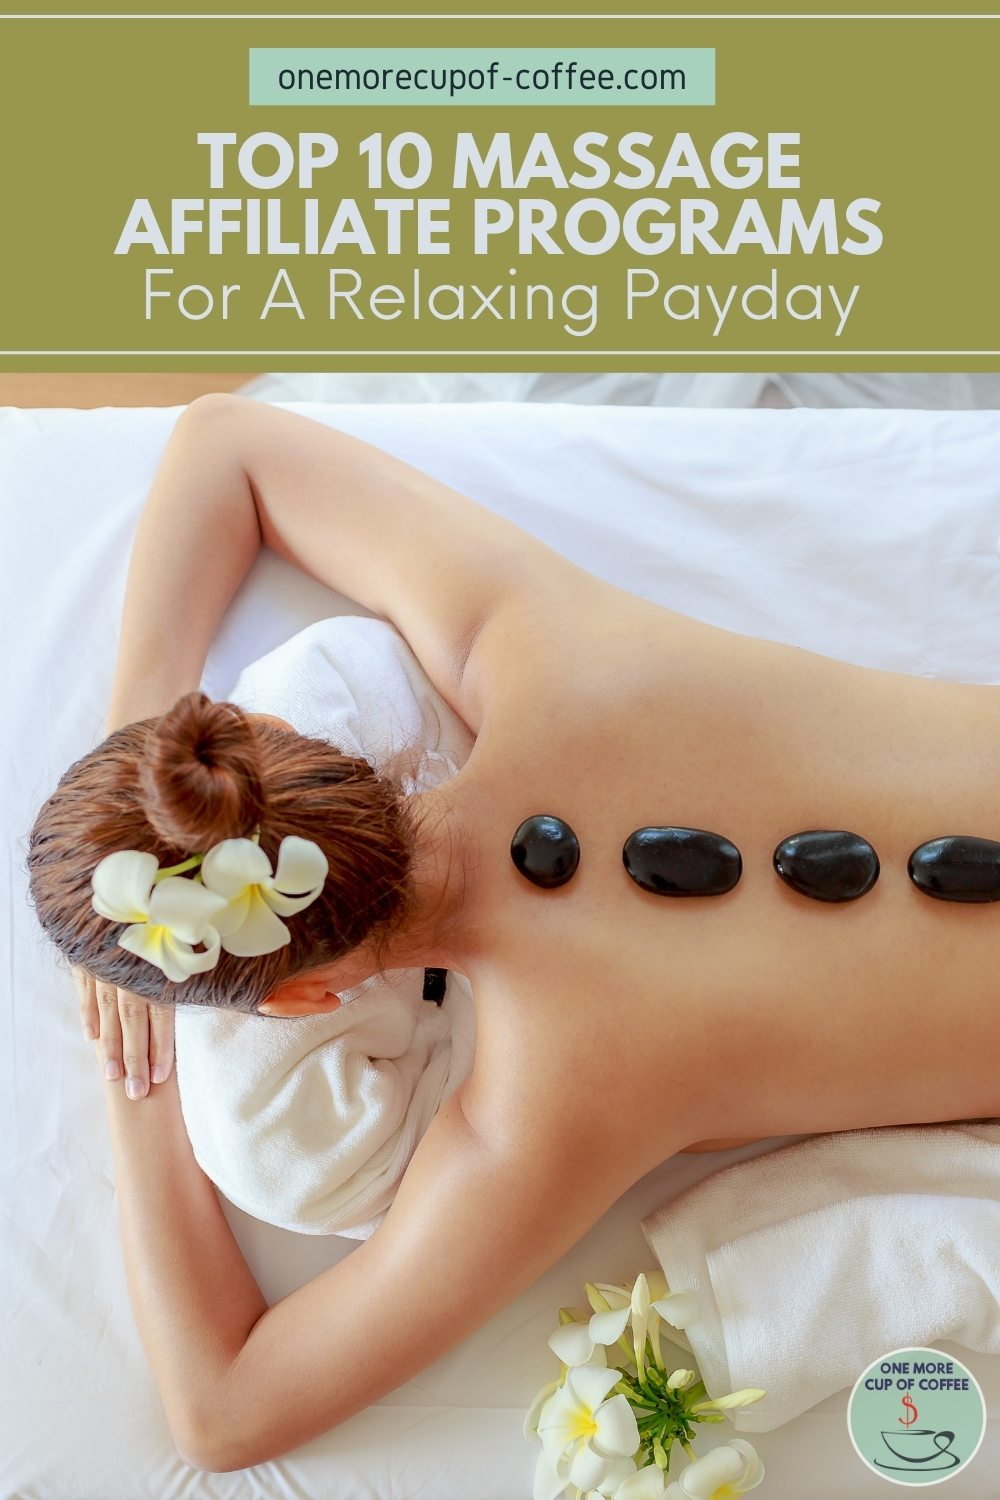 """woman with flower on her hair in prone position with heated stone on her back; with text overlay """"Top 10 Massage Affiliate Programs For A Relaxing Payday"""""""